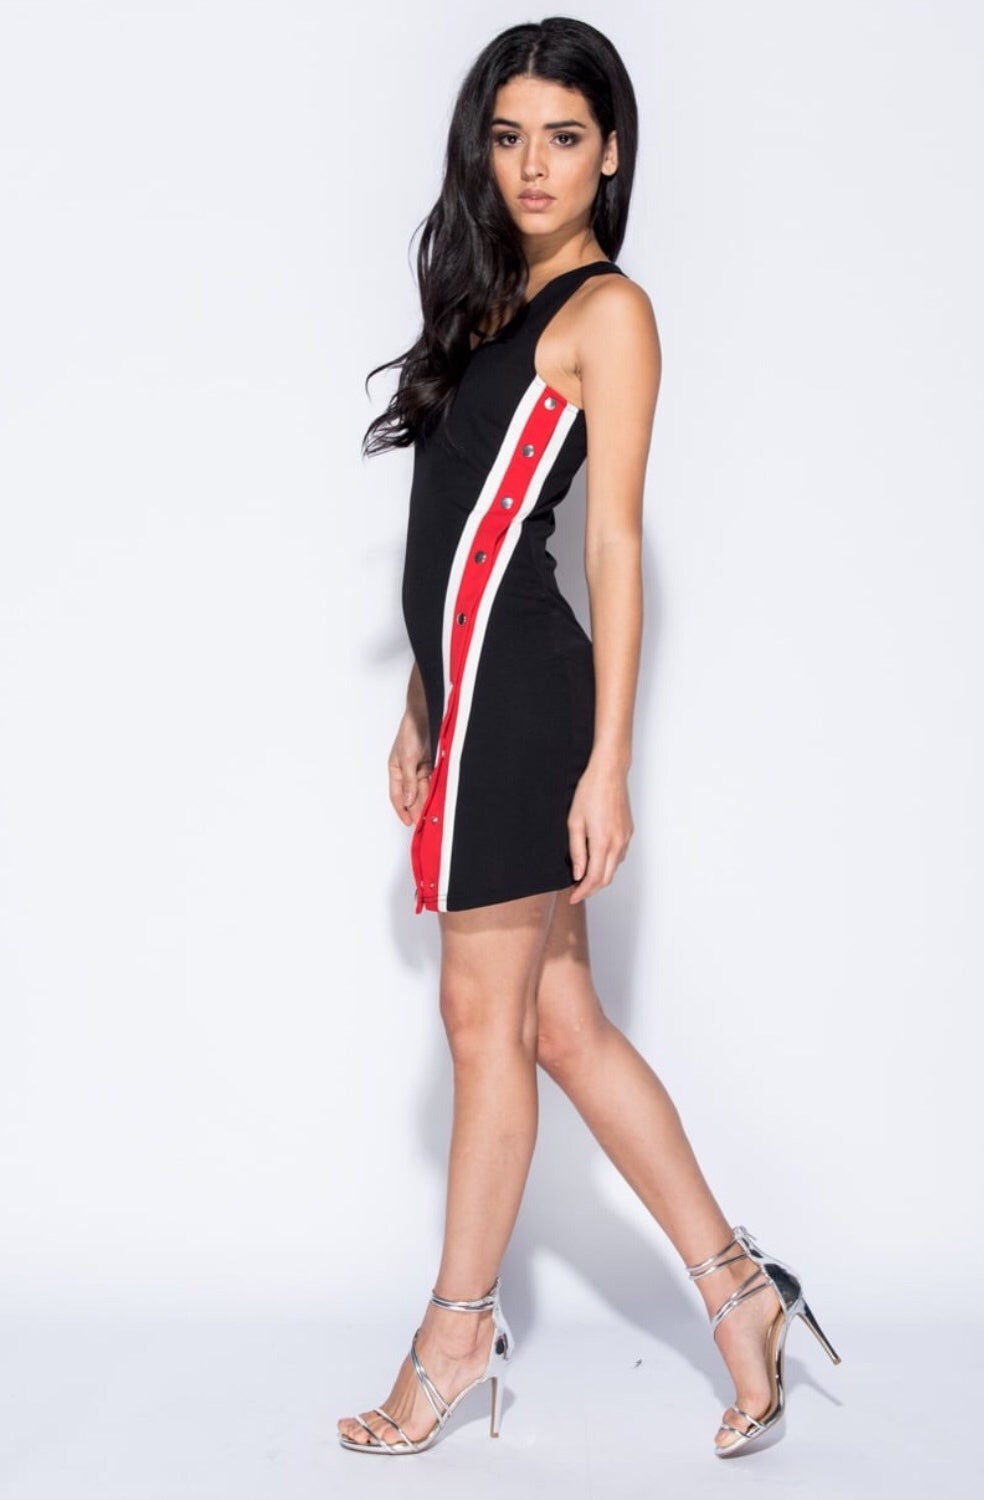 Image of Nova (popper bodycon) dress